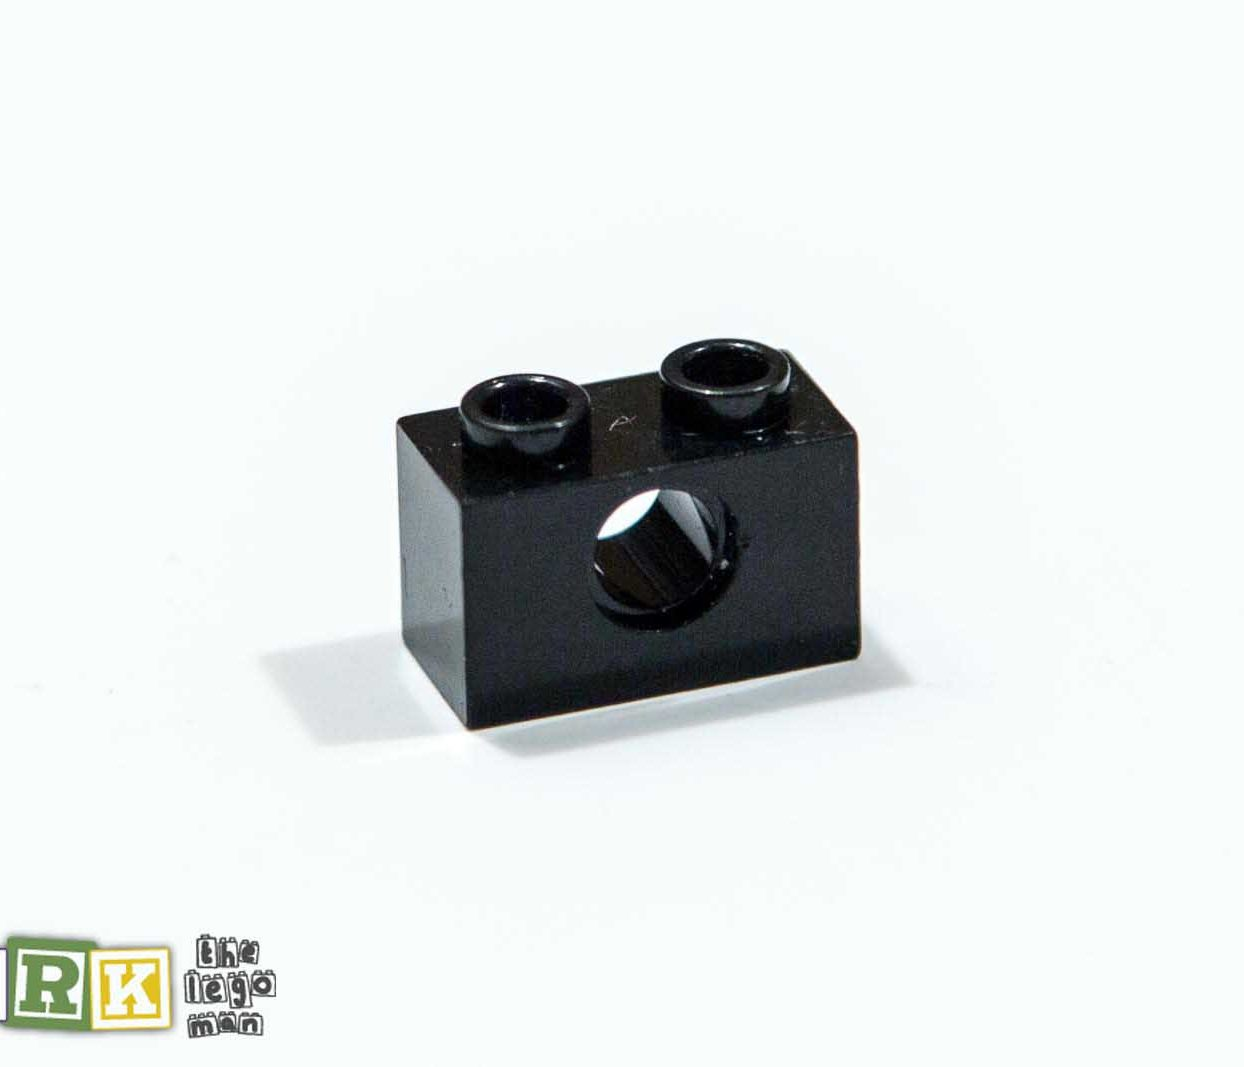 Lego 370026 3700 1x Black 1x2, 4,85 Technic Brick with one Hole